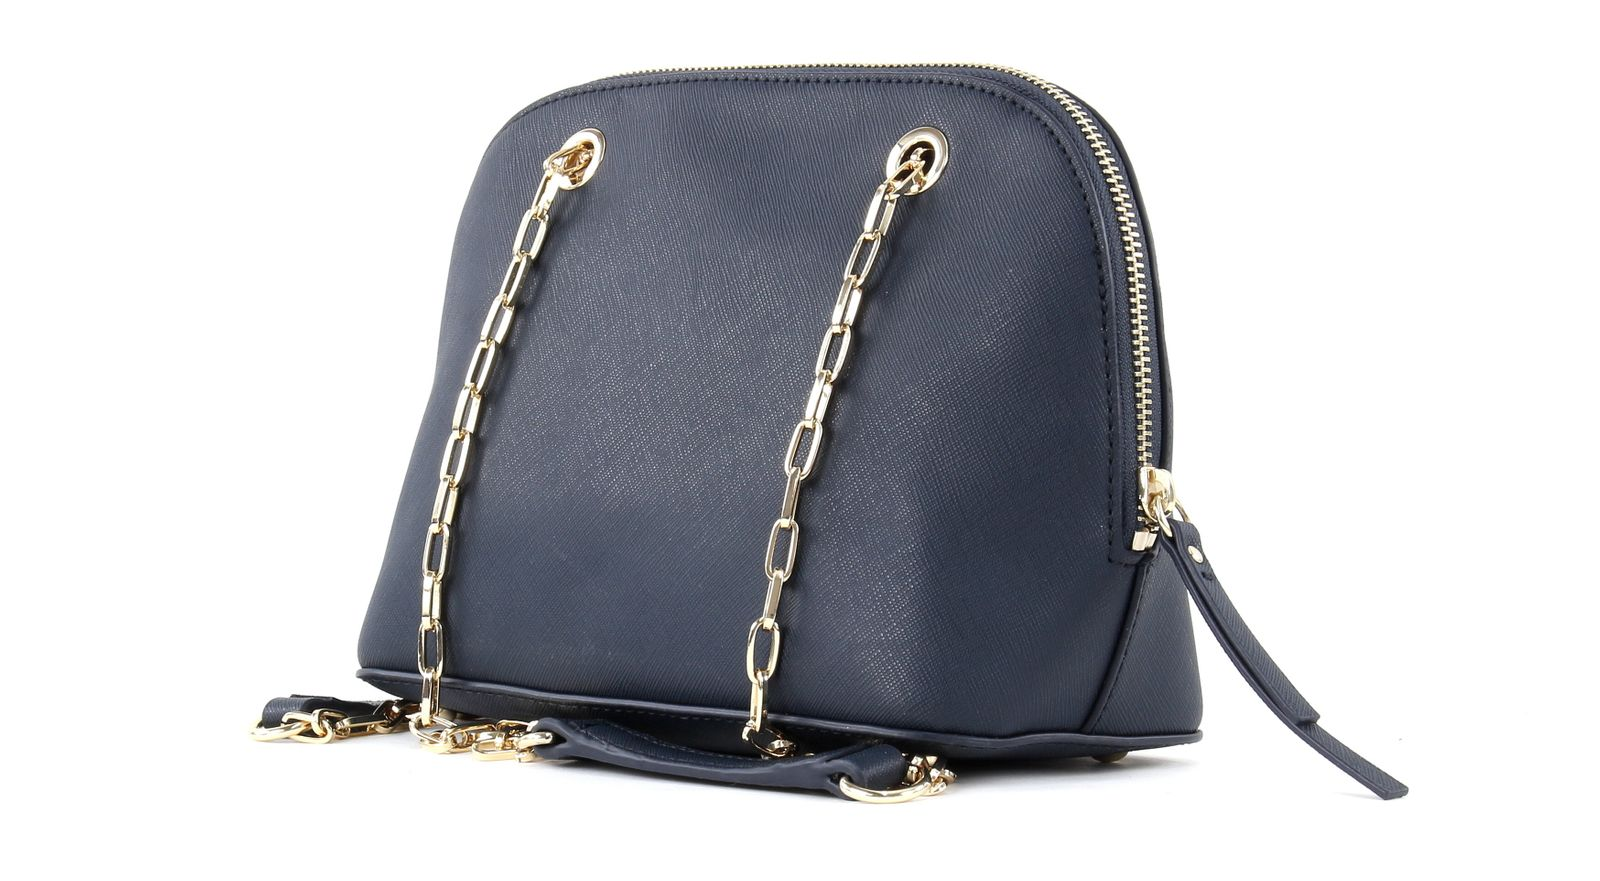 tommy hilfiger cross body bag th chain small domed duffle. Black Bedroom Furniture Sets. Home Design Ideas